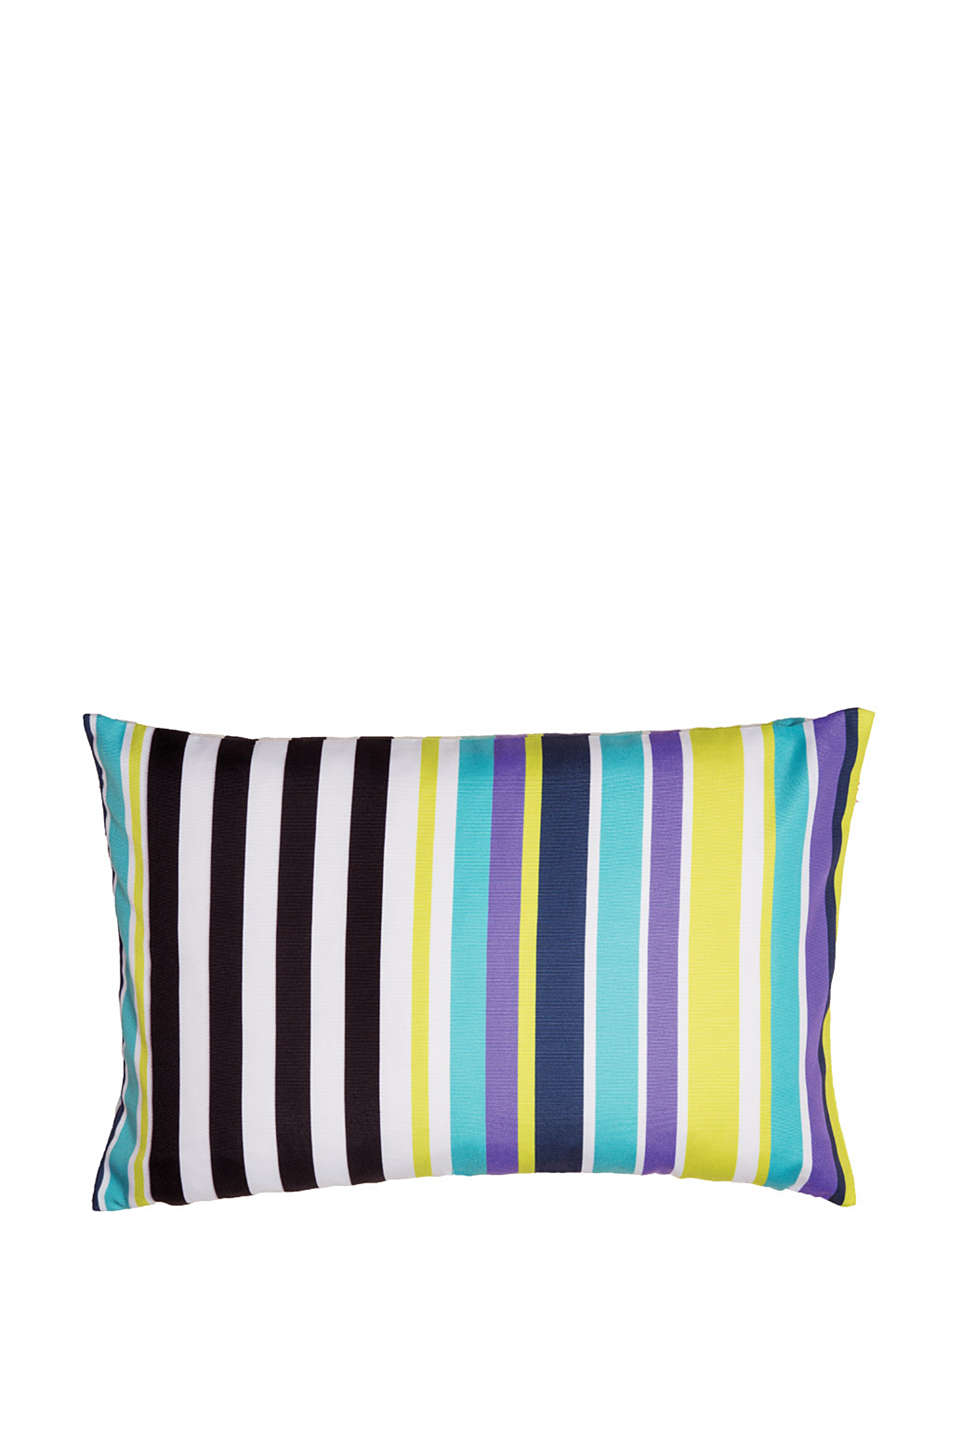 Esprit - Cushion cover with a digital stripe print